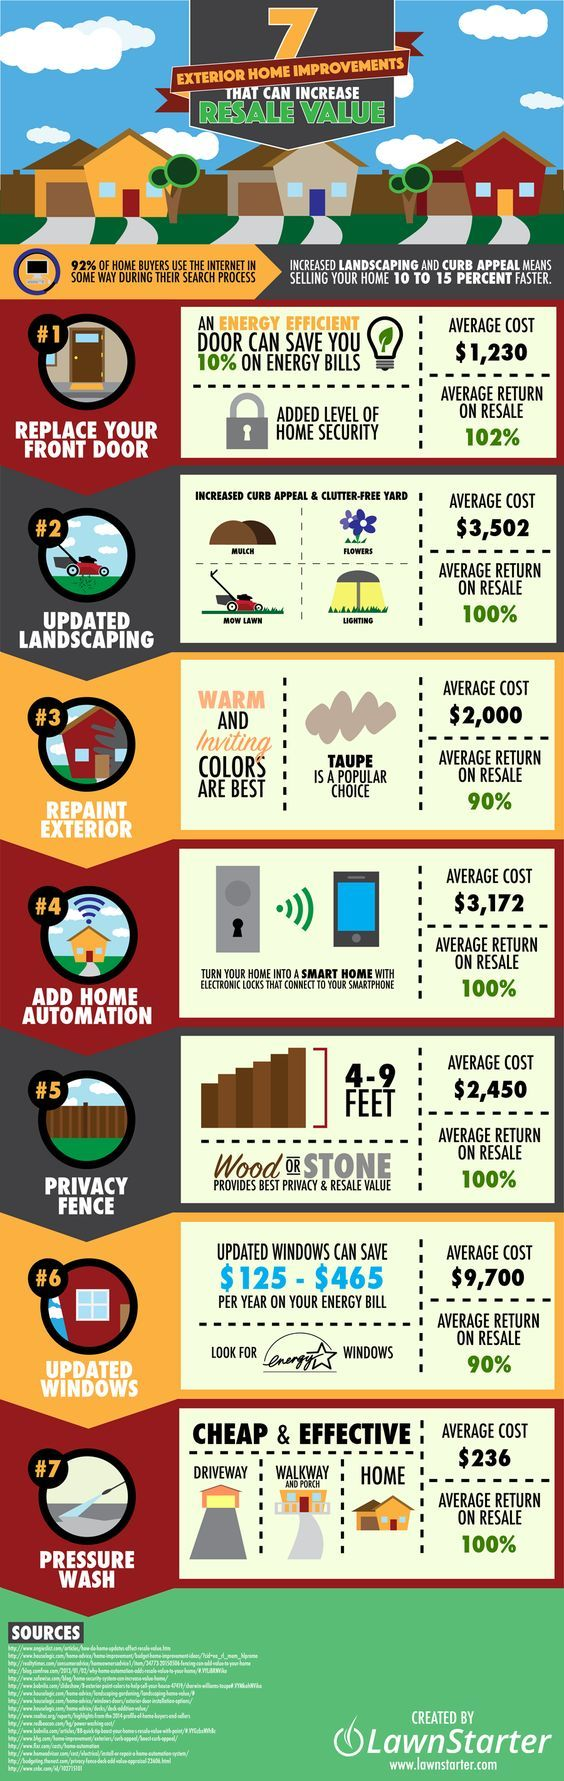 Buying your first home together reco website - 7 Exterior Home Improvements That Increase Resale Value